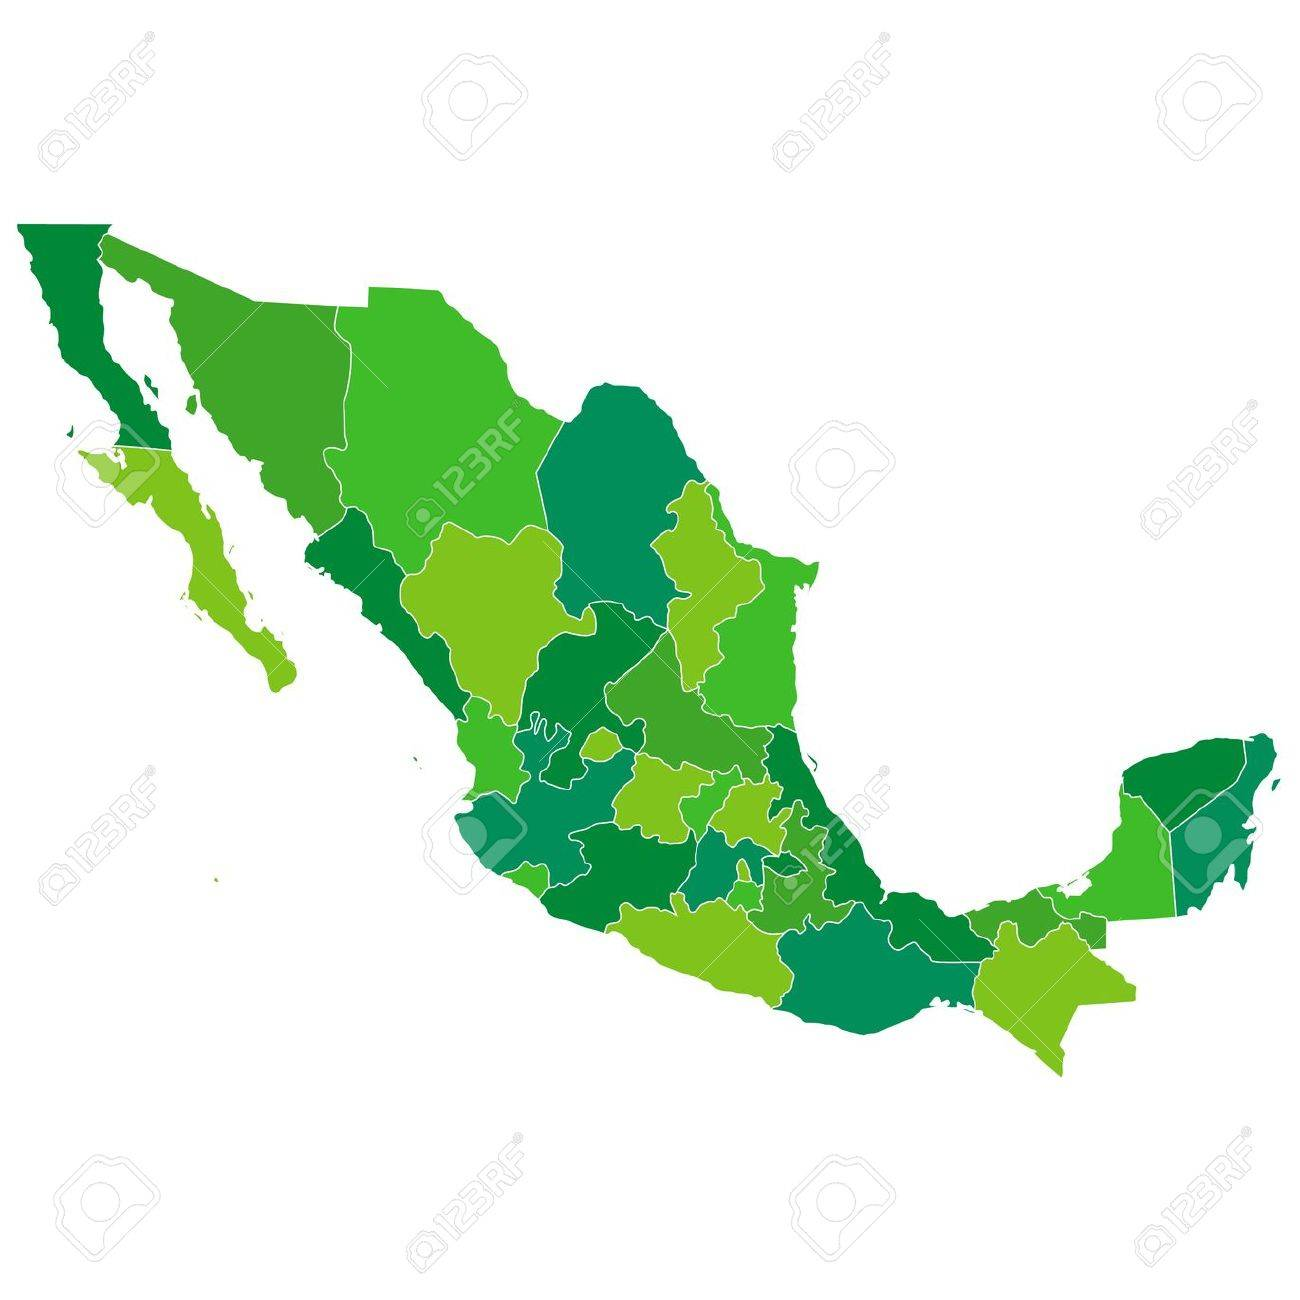 Mexico Stock Vector - 14703282